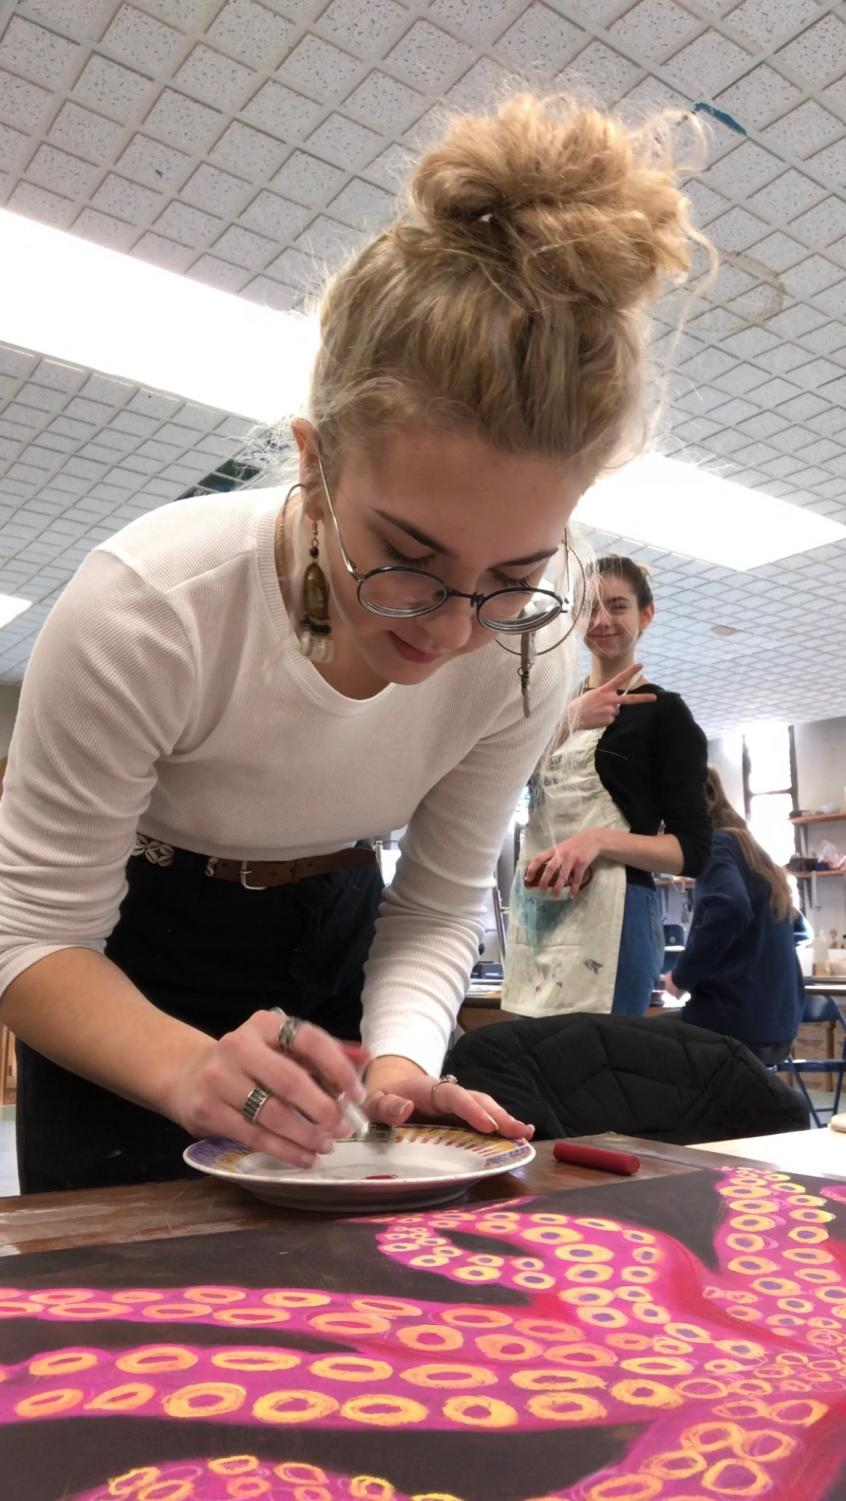 Senior Lydia Crowley puts finishing touches on an art project.